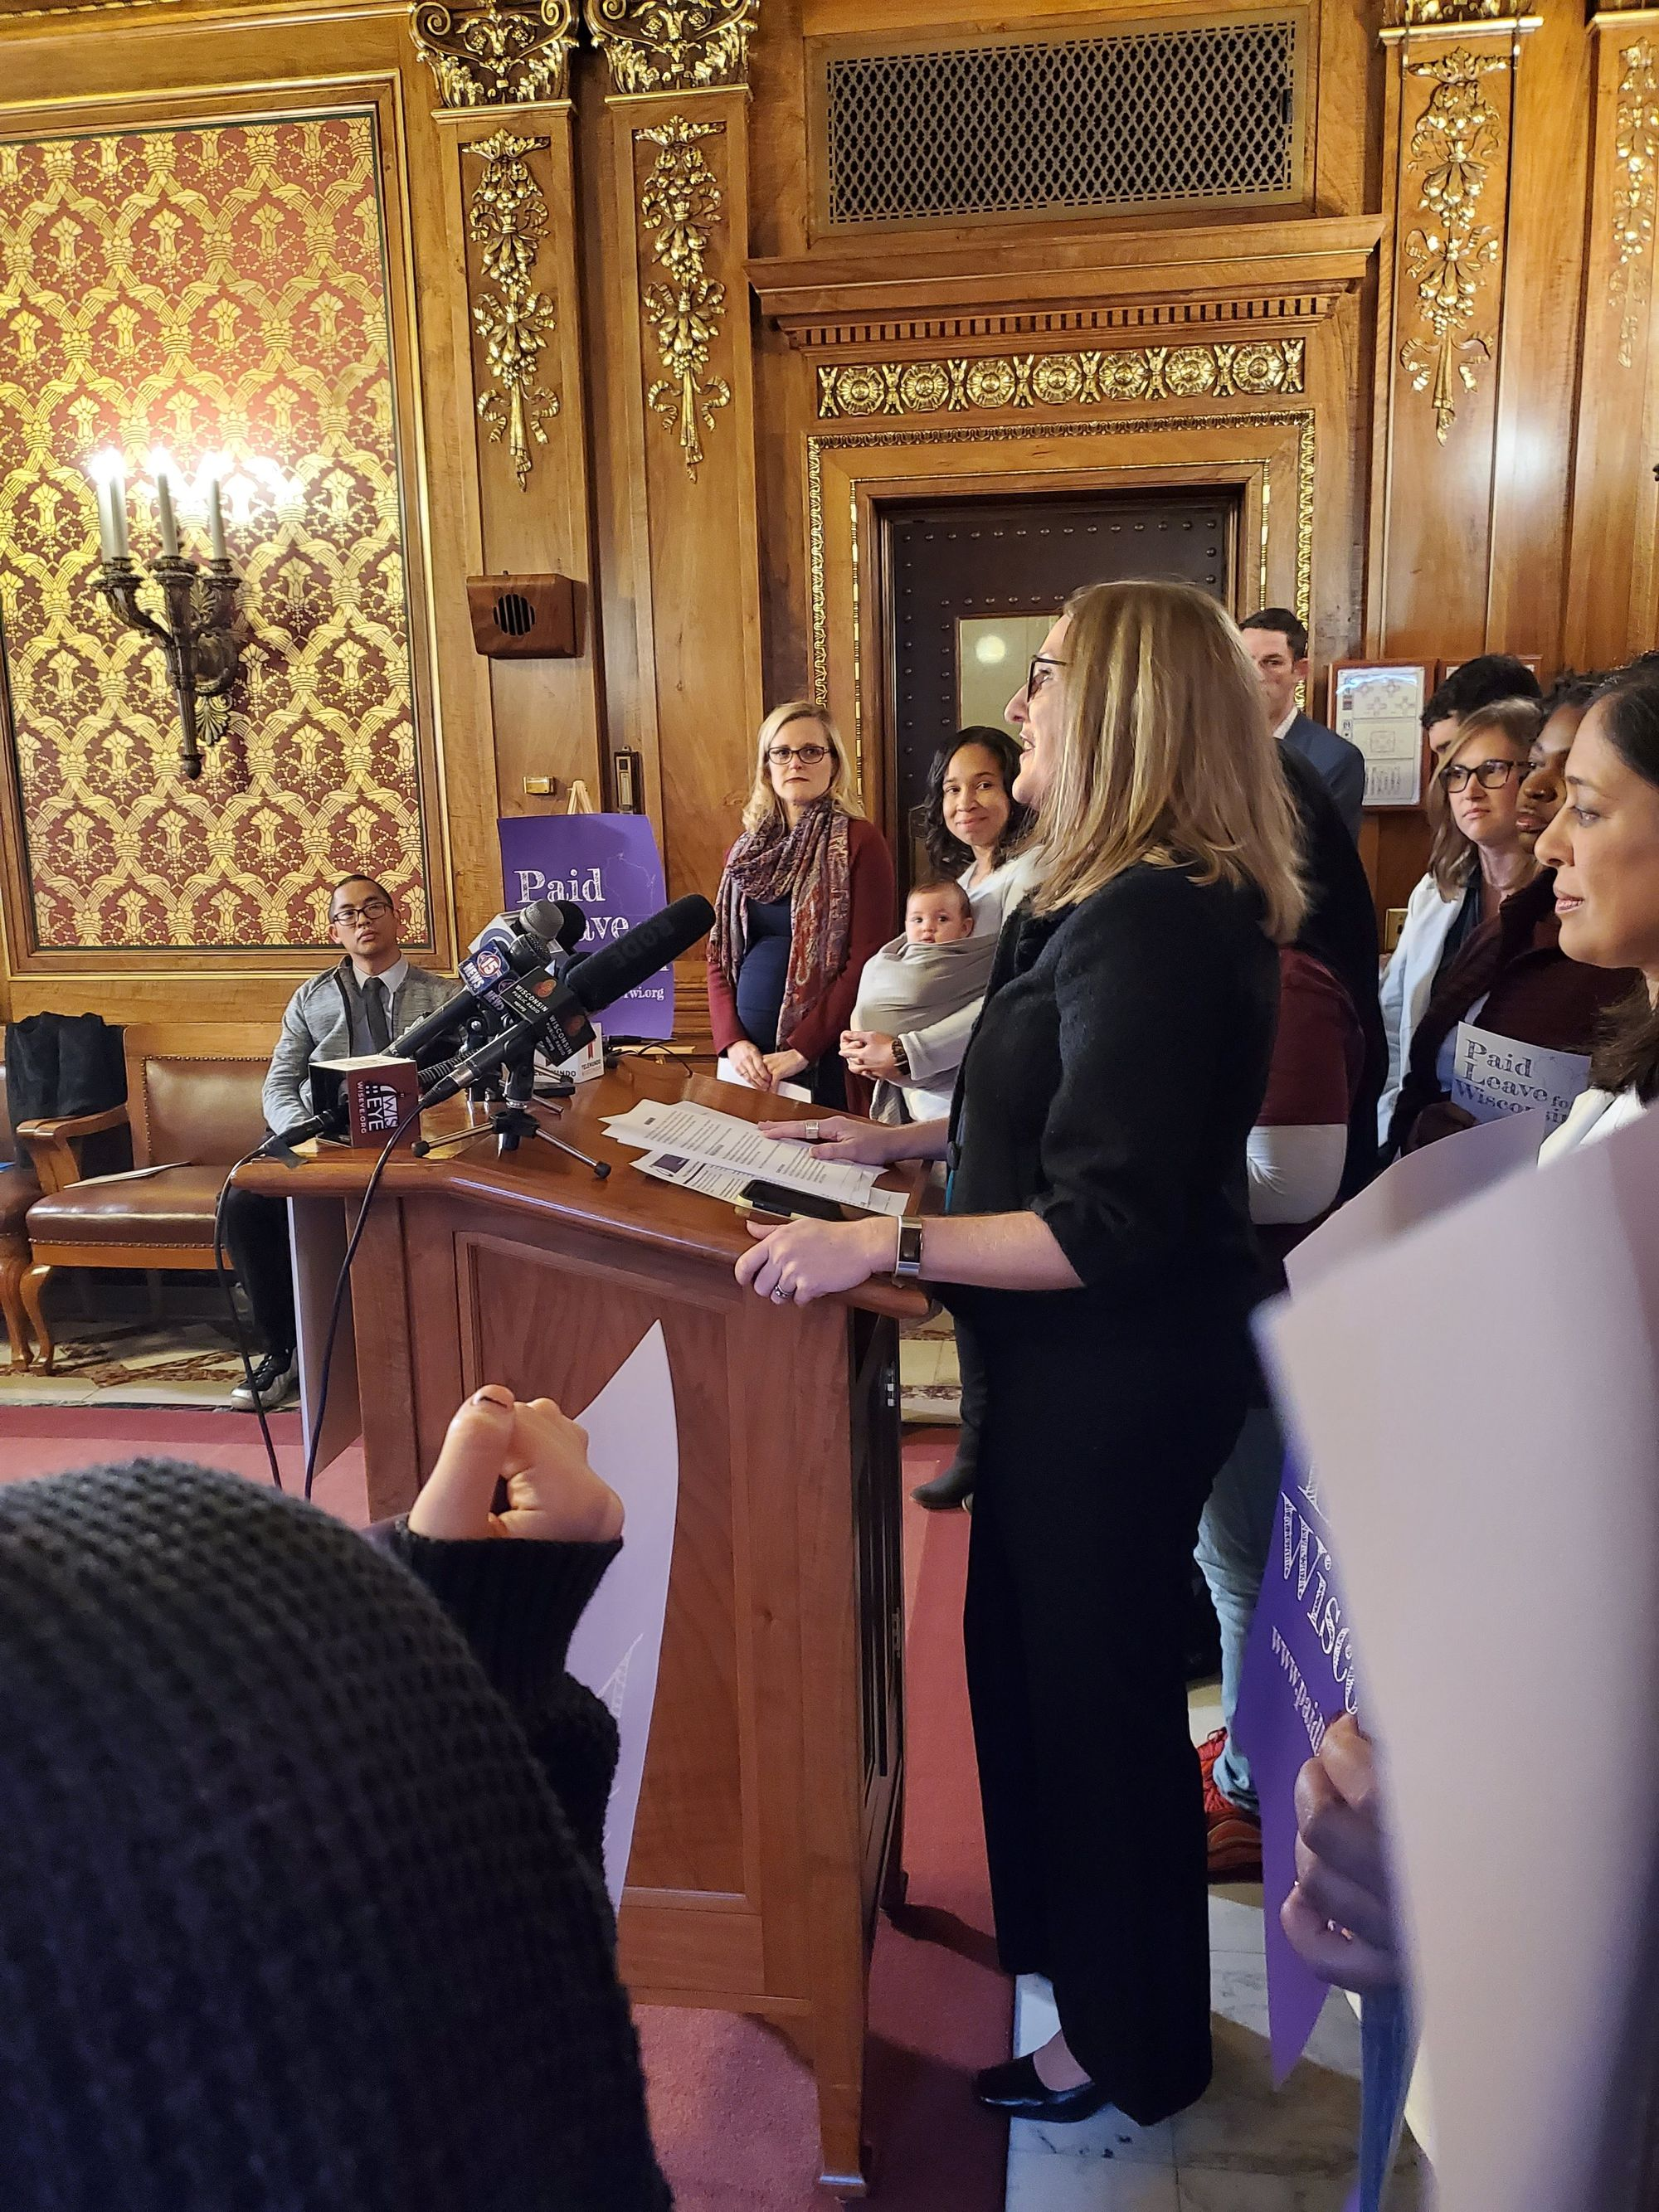 Image of a light skinned woman with light brown hair and dark glasses speaking at a wood podium. There are a variety of people standing around her, some with purple signs that say Paid Leave Wisconsin.       .